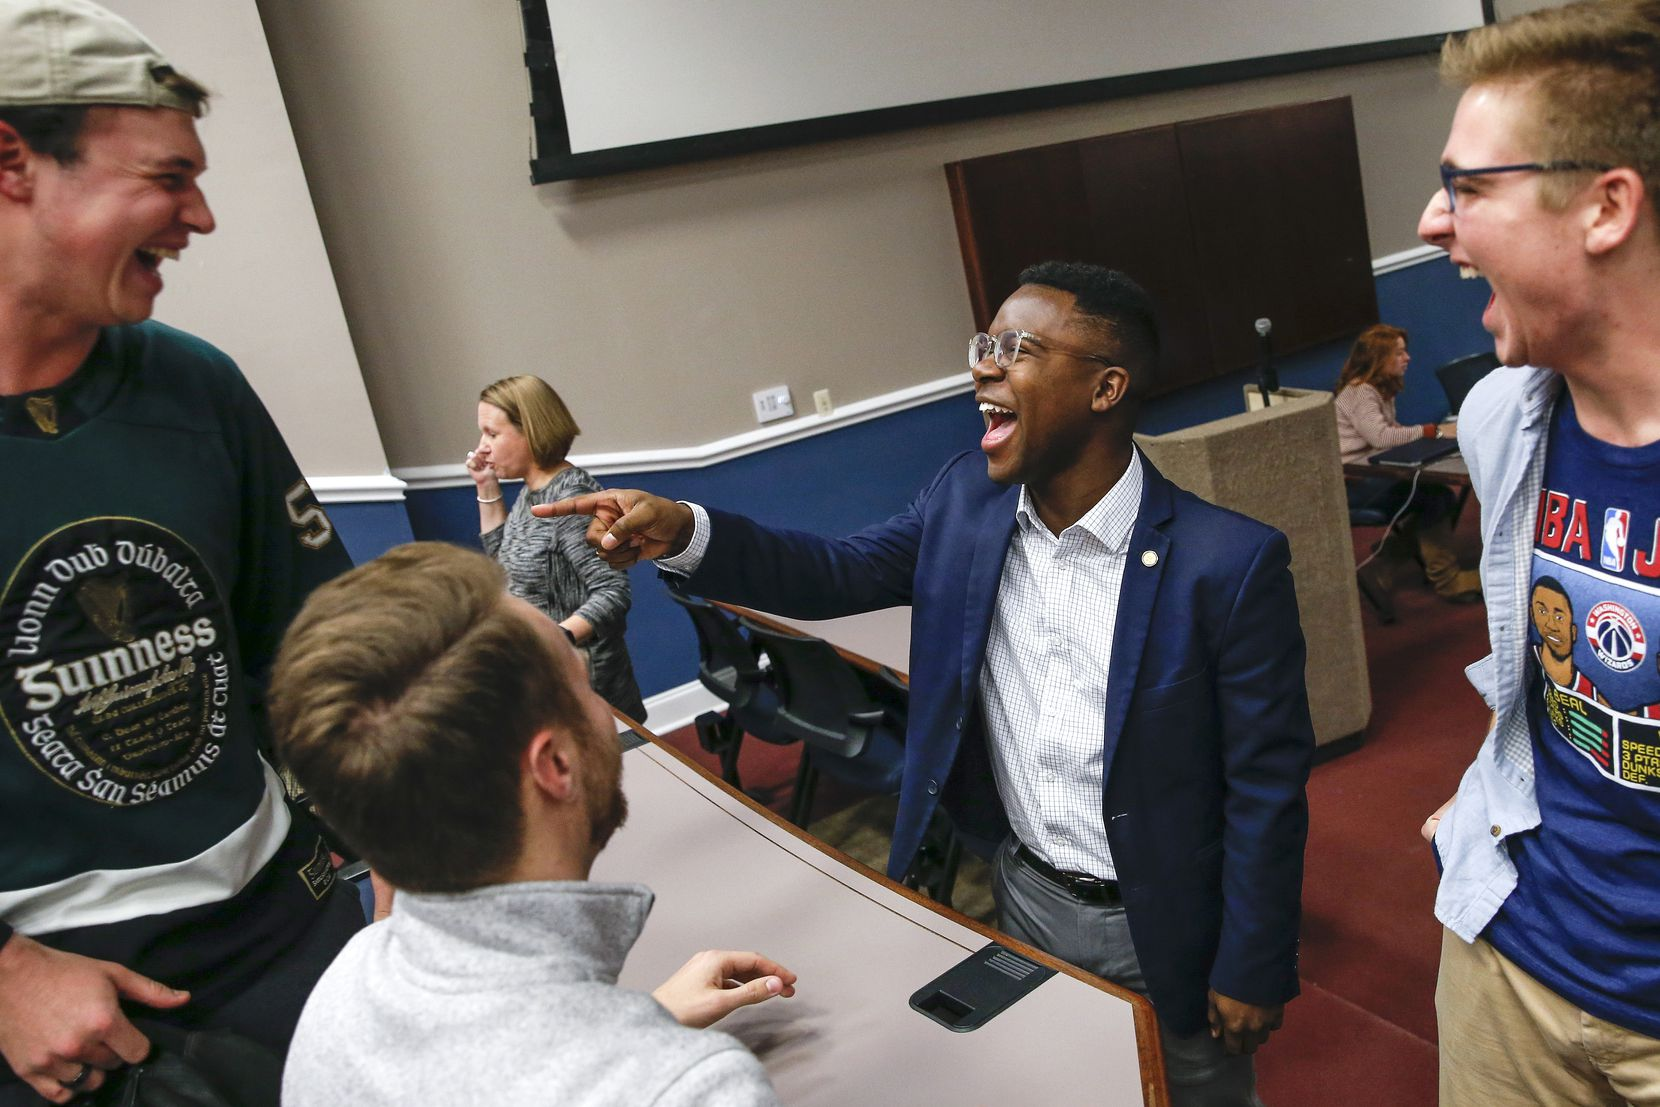 SMU student body president, Darian Taylor, center, chats with, from left, Reed Wilkerson, Chris Earles and Jack Lucas after a meeting of the Student Senate.